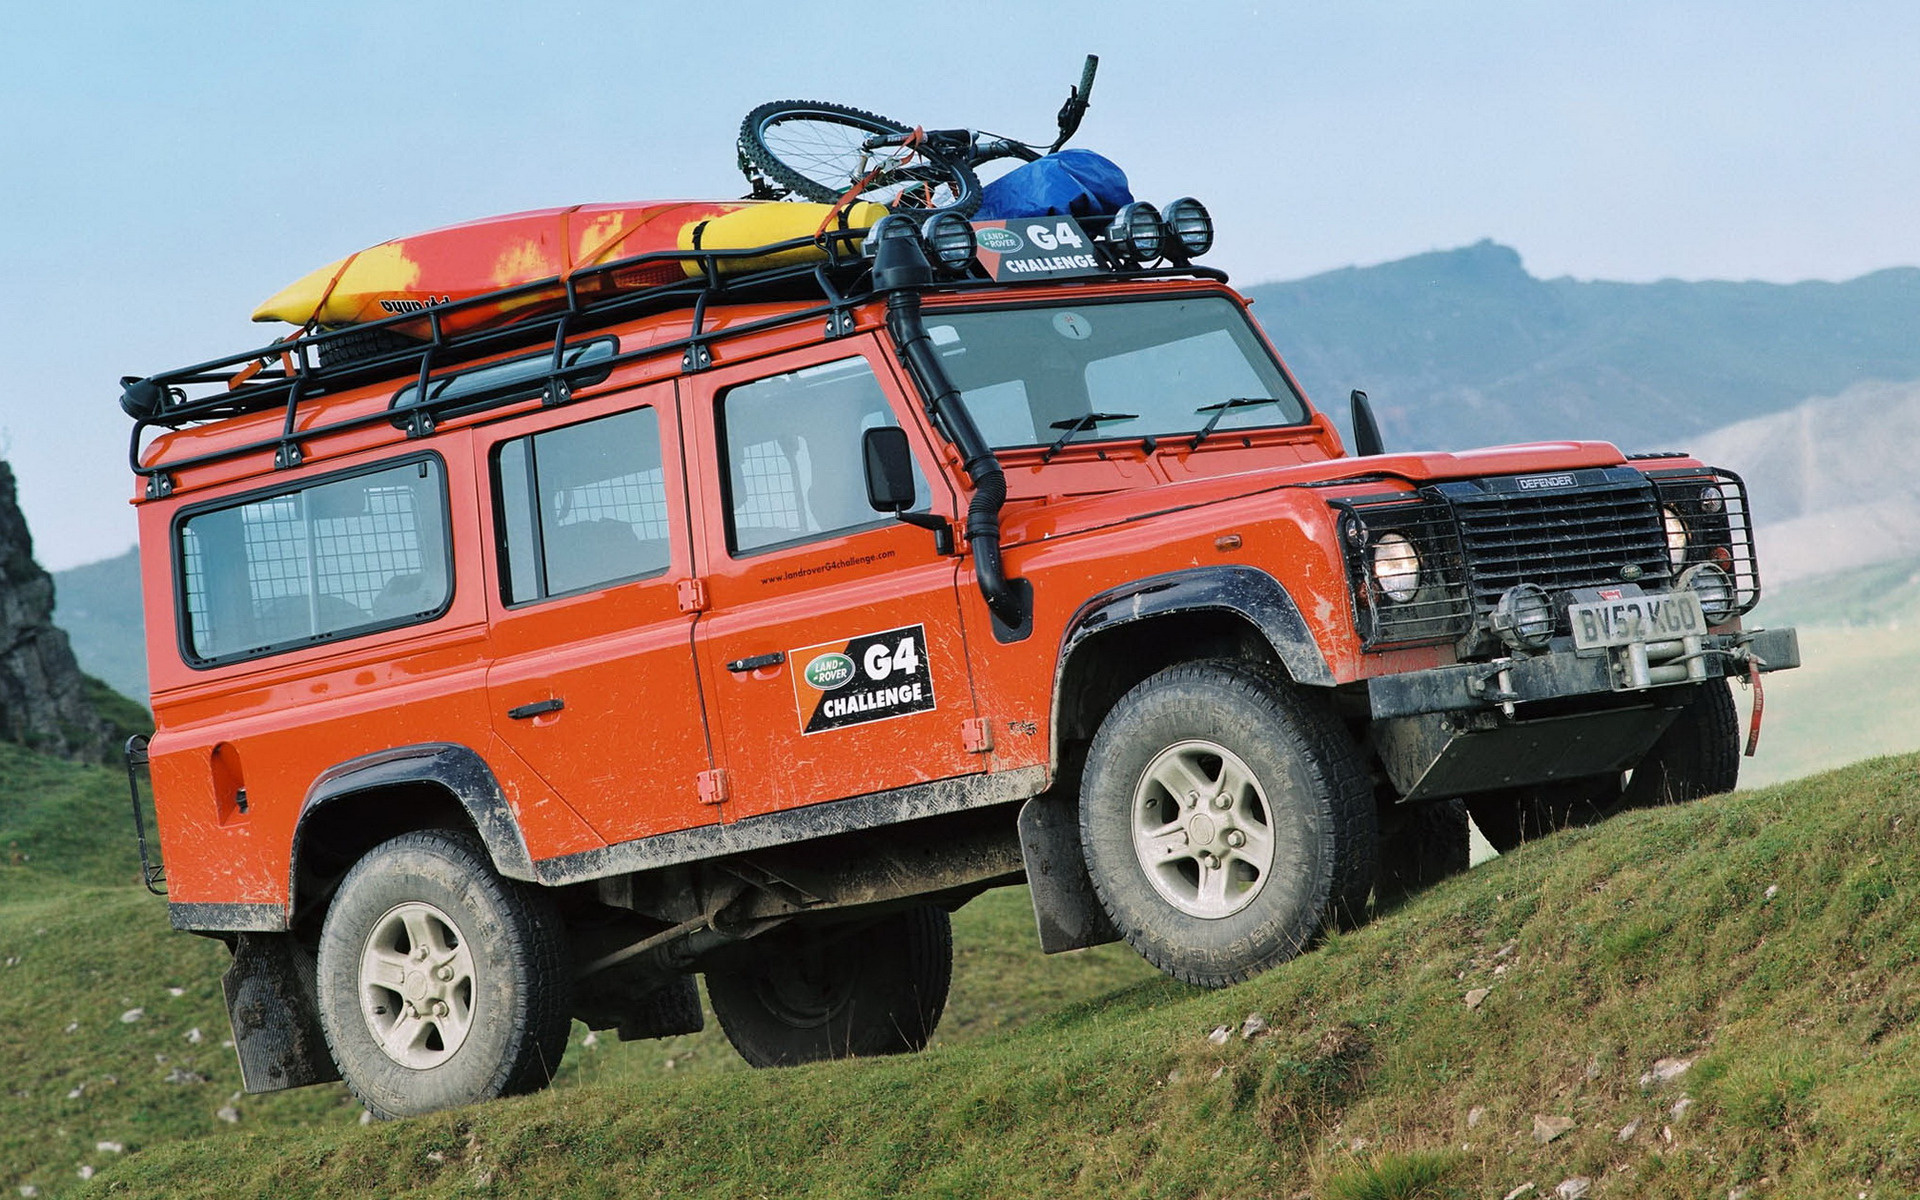 Land Rover Defender 110 >> 2006 Land Rover Defender 110 G4 Challenge - Wallpapers and ...